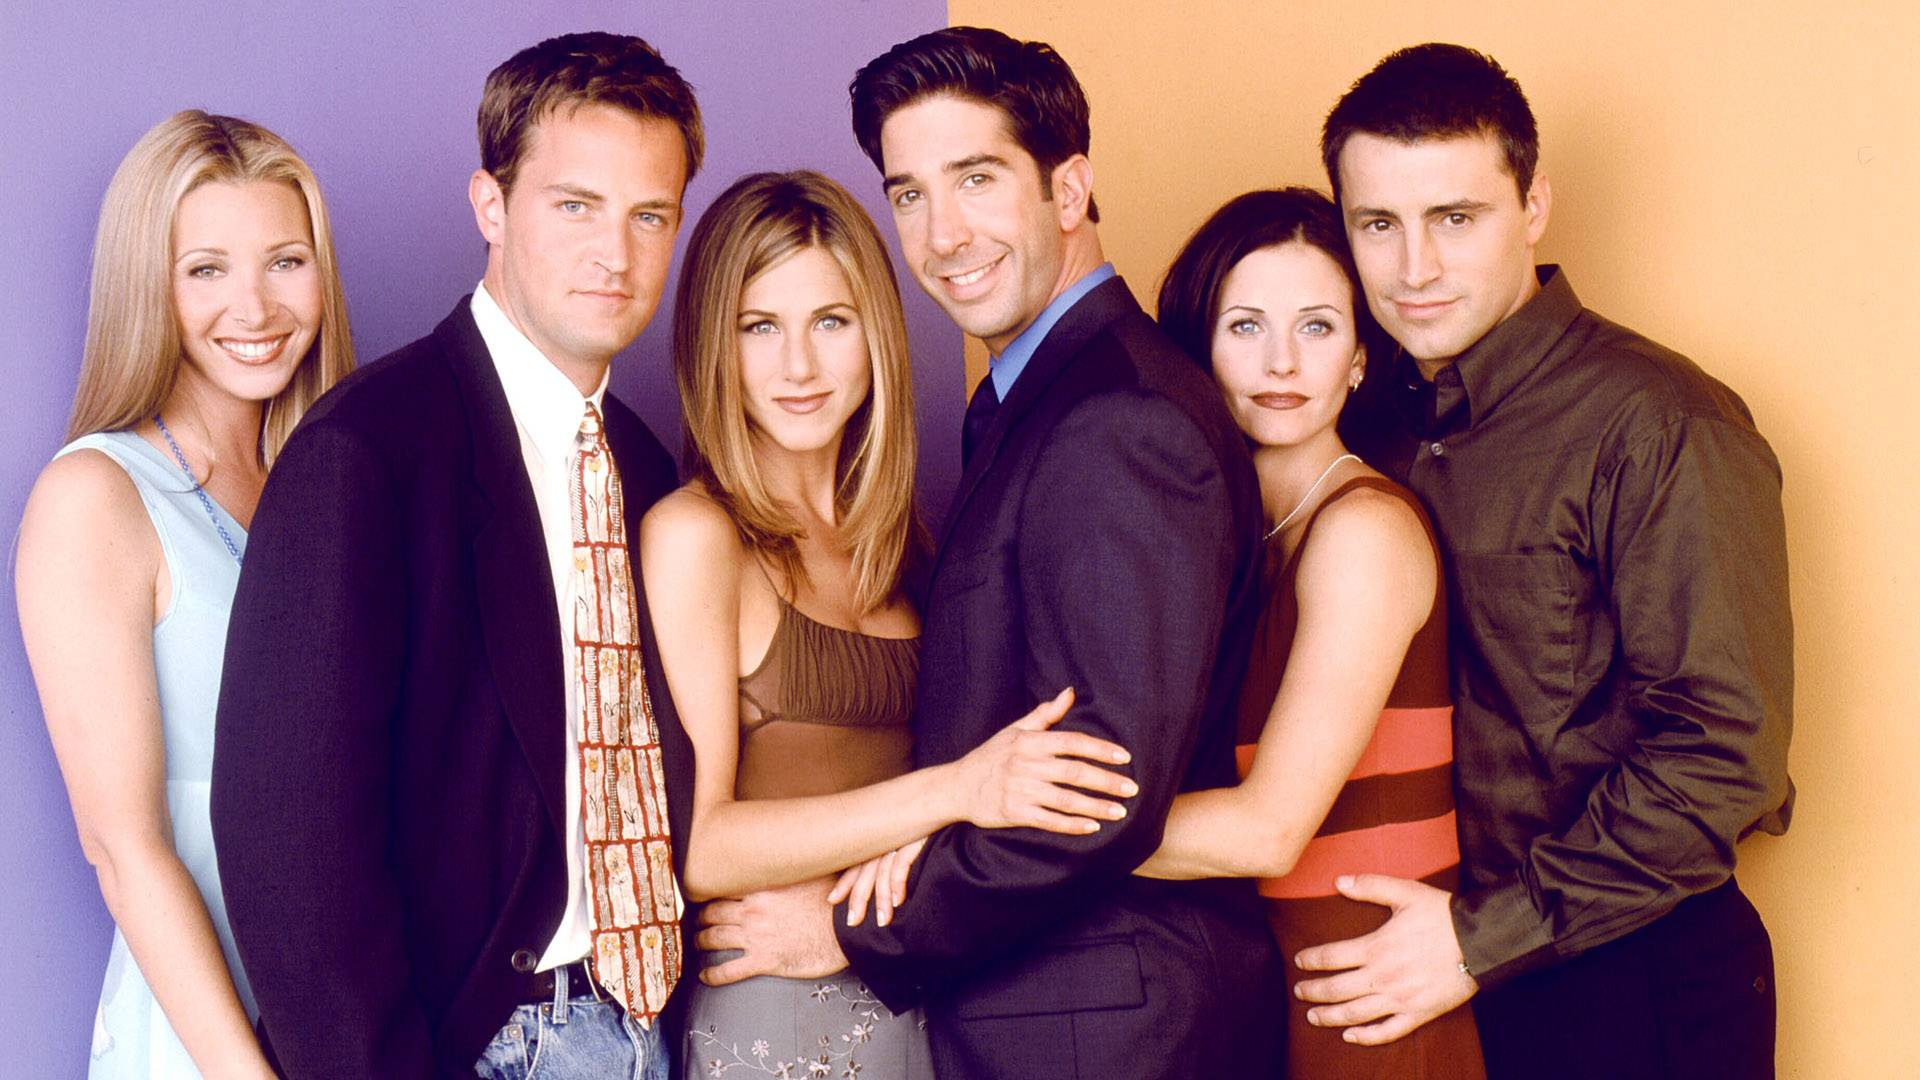 Friends Tv Wallpapers Group (59+)